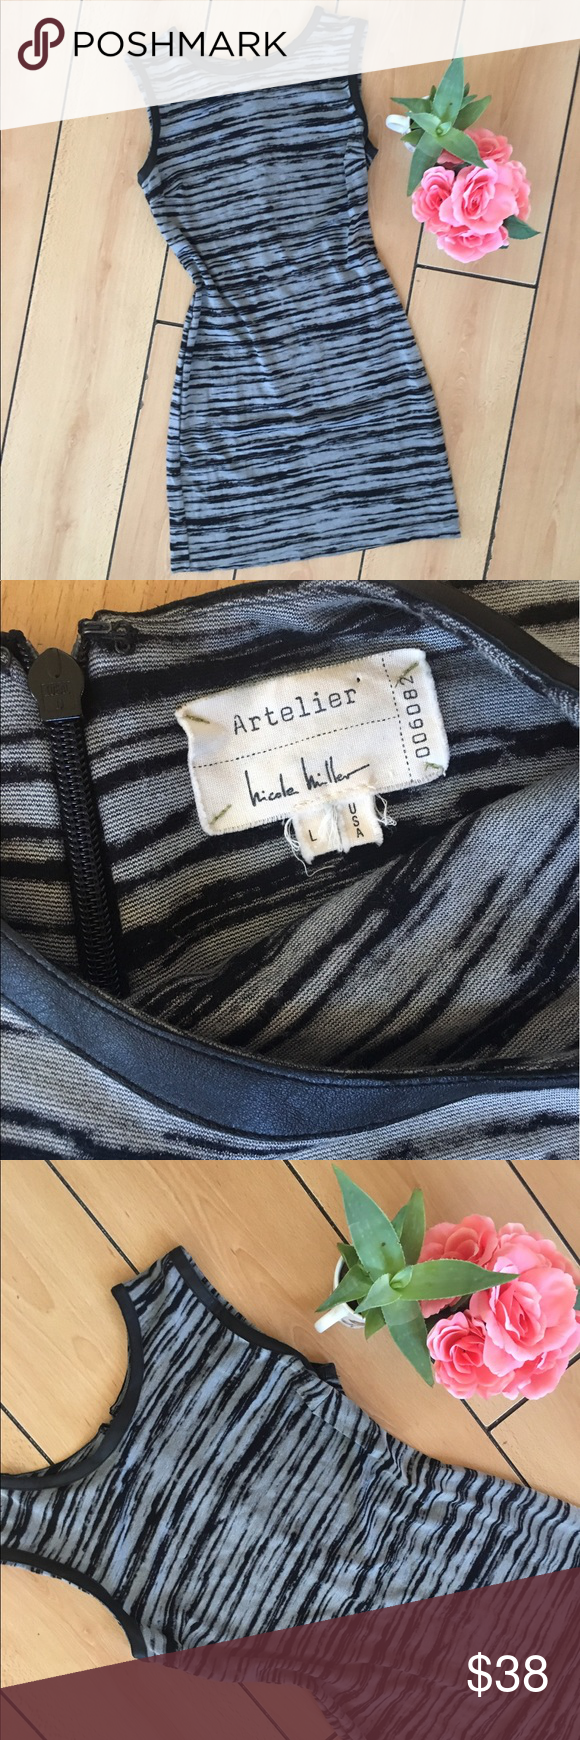 Atelier by Nicole Miller 🚨final price🚨 In good used condition Nicole Miller Dresses